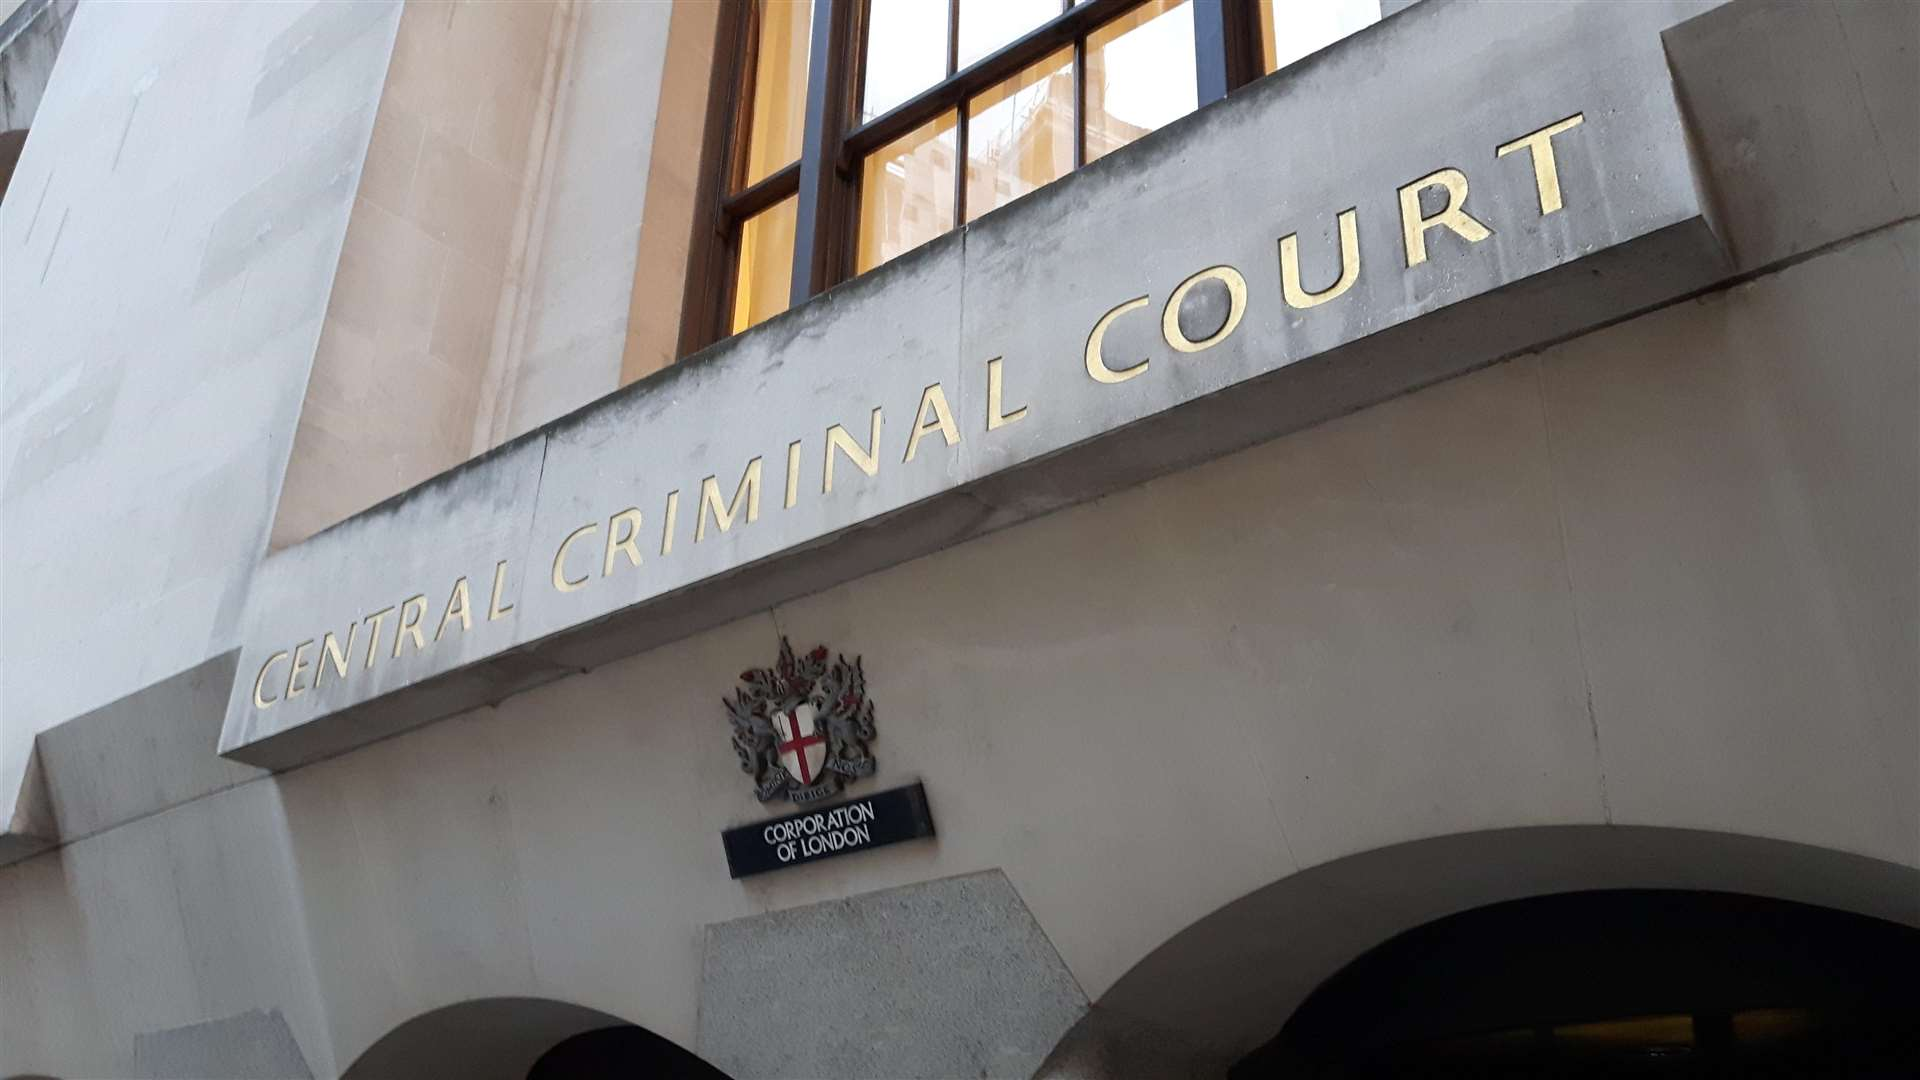 The case was heard at The Old Bailey, Central Criminal Court, London